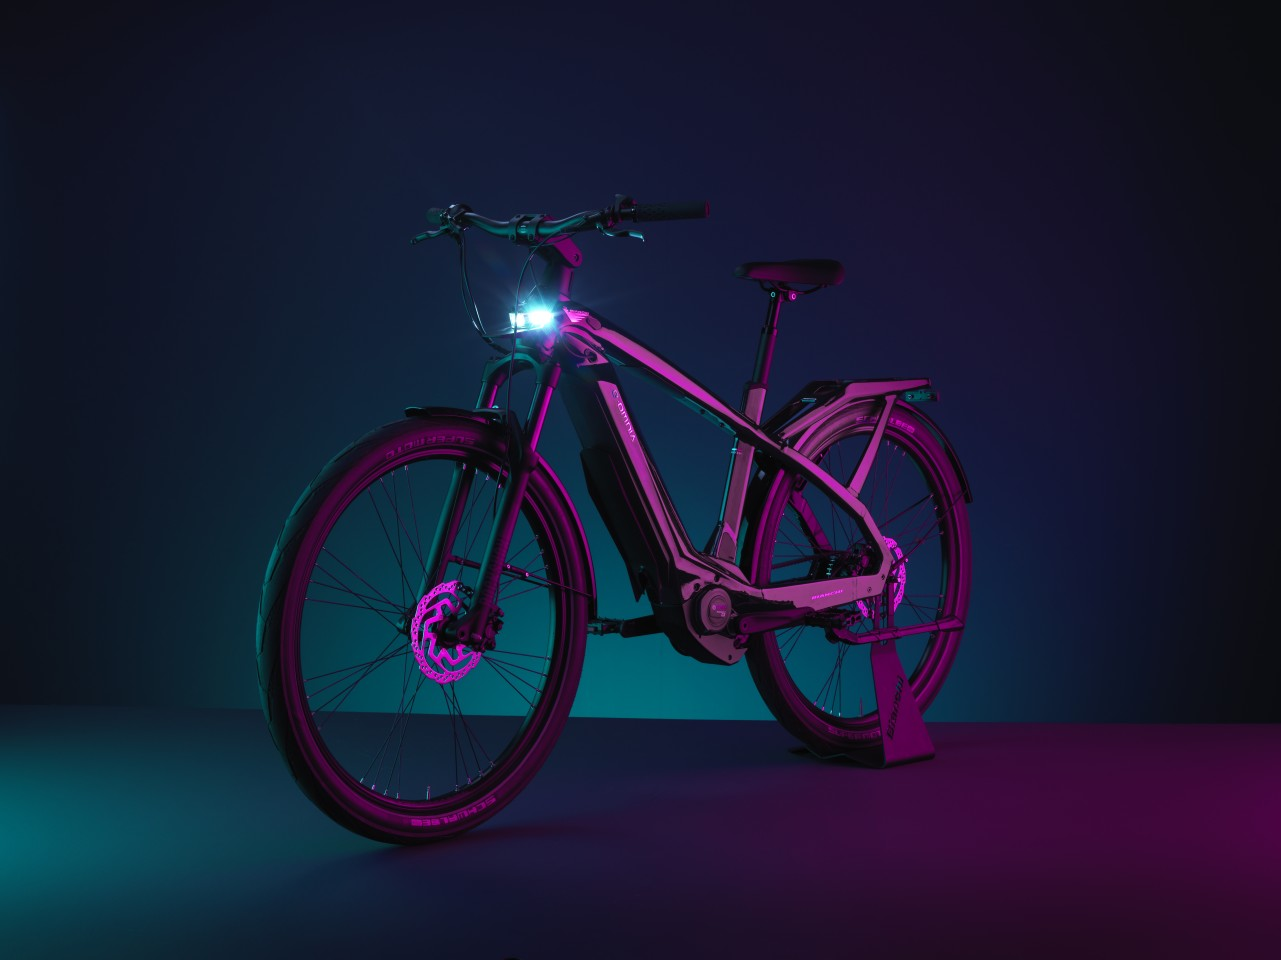 The T-Type ebikes are suited to both city commutes and long road trips